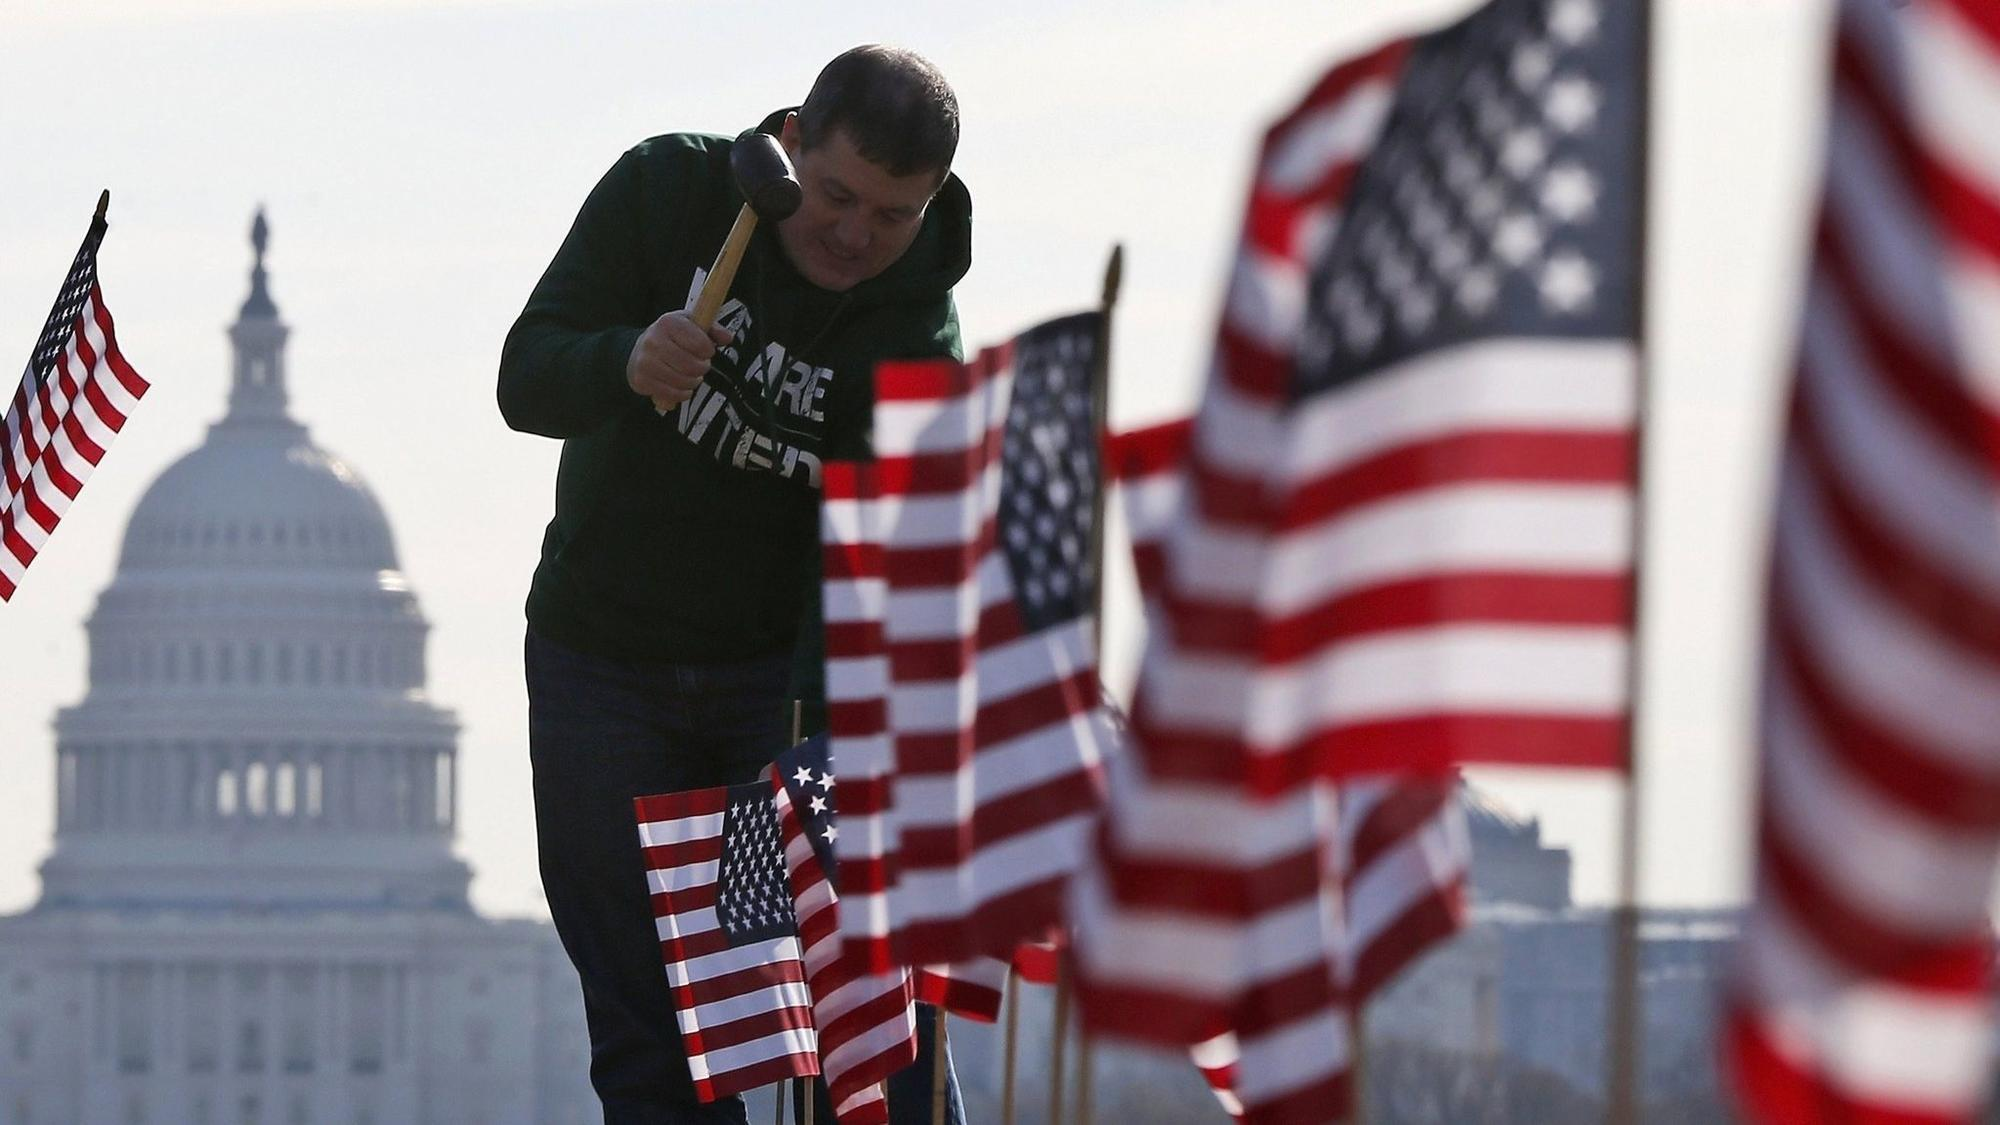 Why So Many Veterans Commit Suicide Chicago Tribune - Us-military-vet